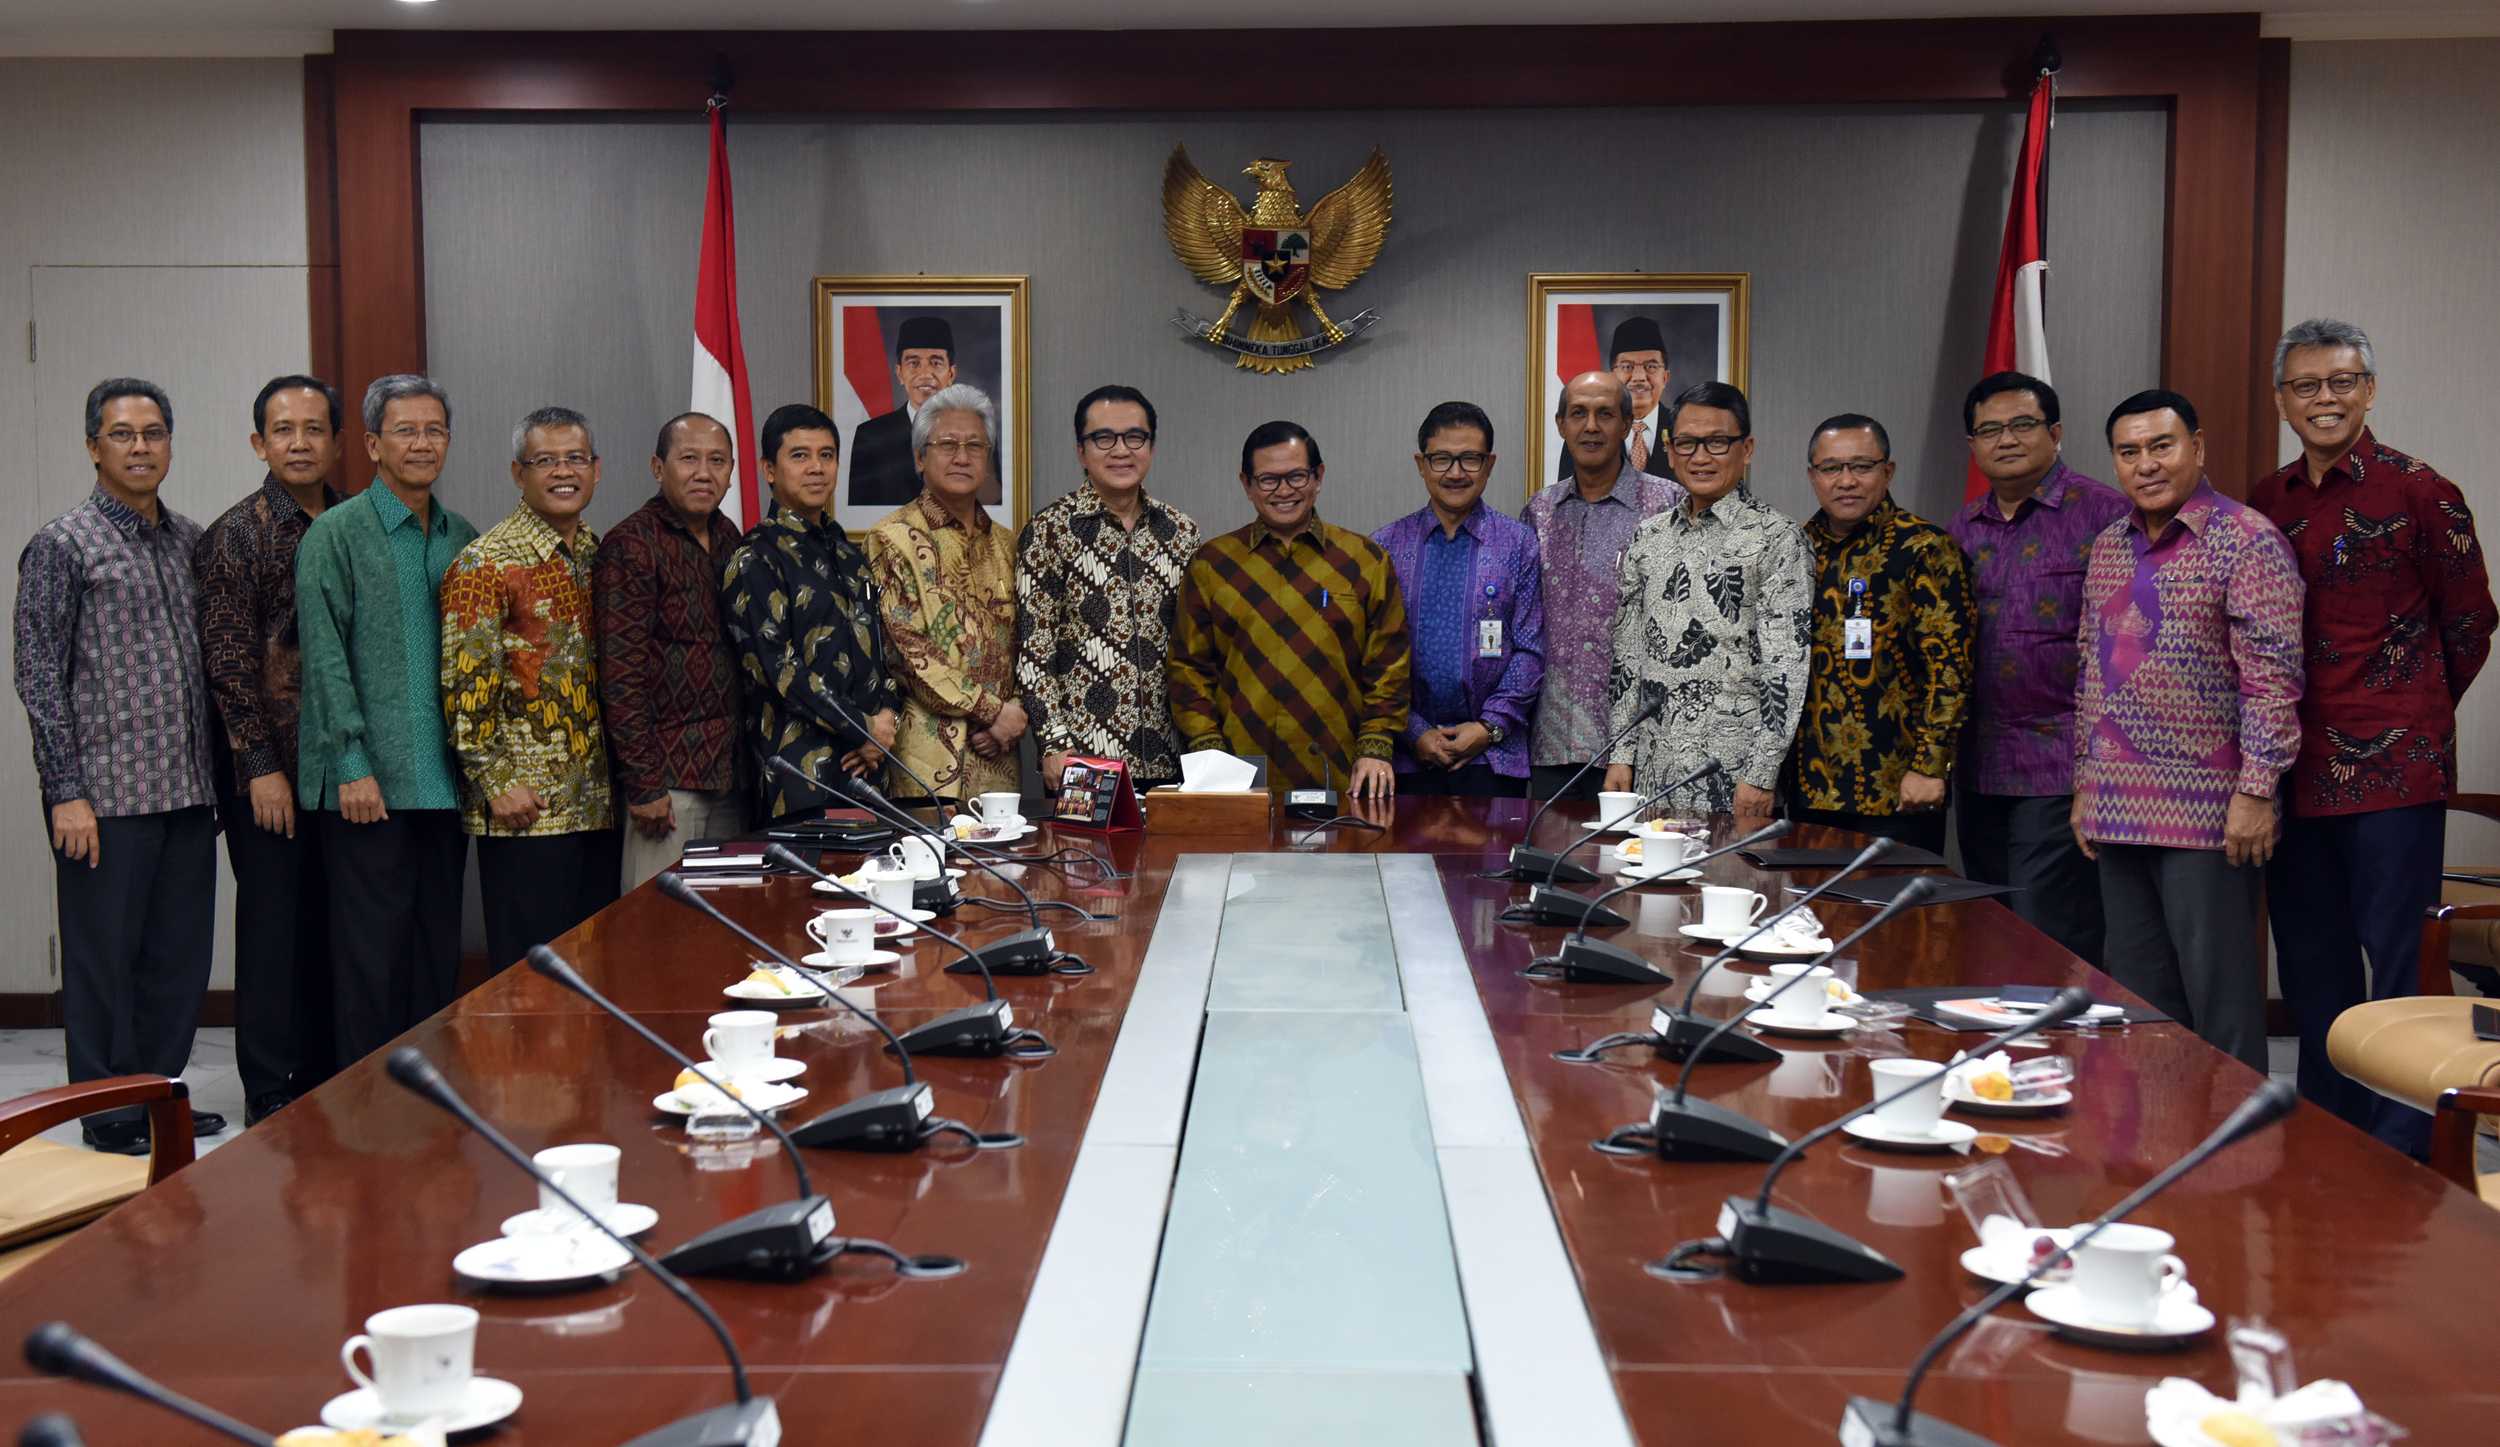 Cabinet Secretary Pramono Anung meets a number of Indonesian Ambassadors Extraordinary and Plenipotentiary inaugurated on 13 March 2017, on Friday (24/3), at the Cabinet Secretary's Office, Jakarta